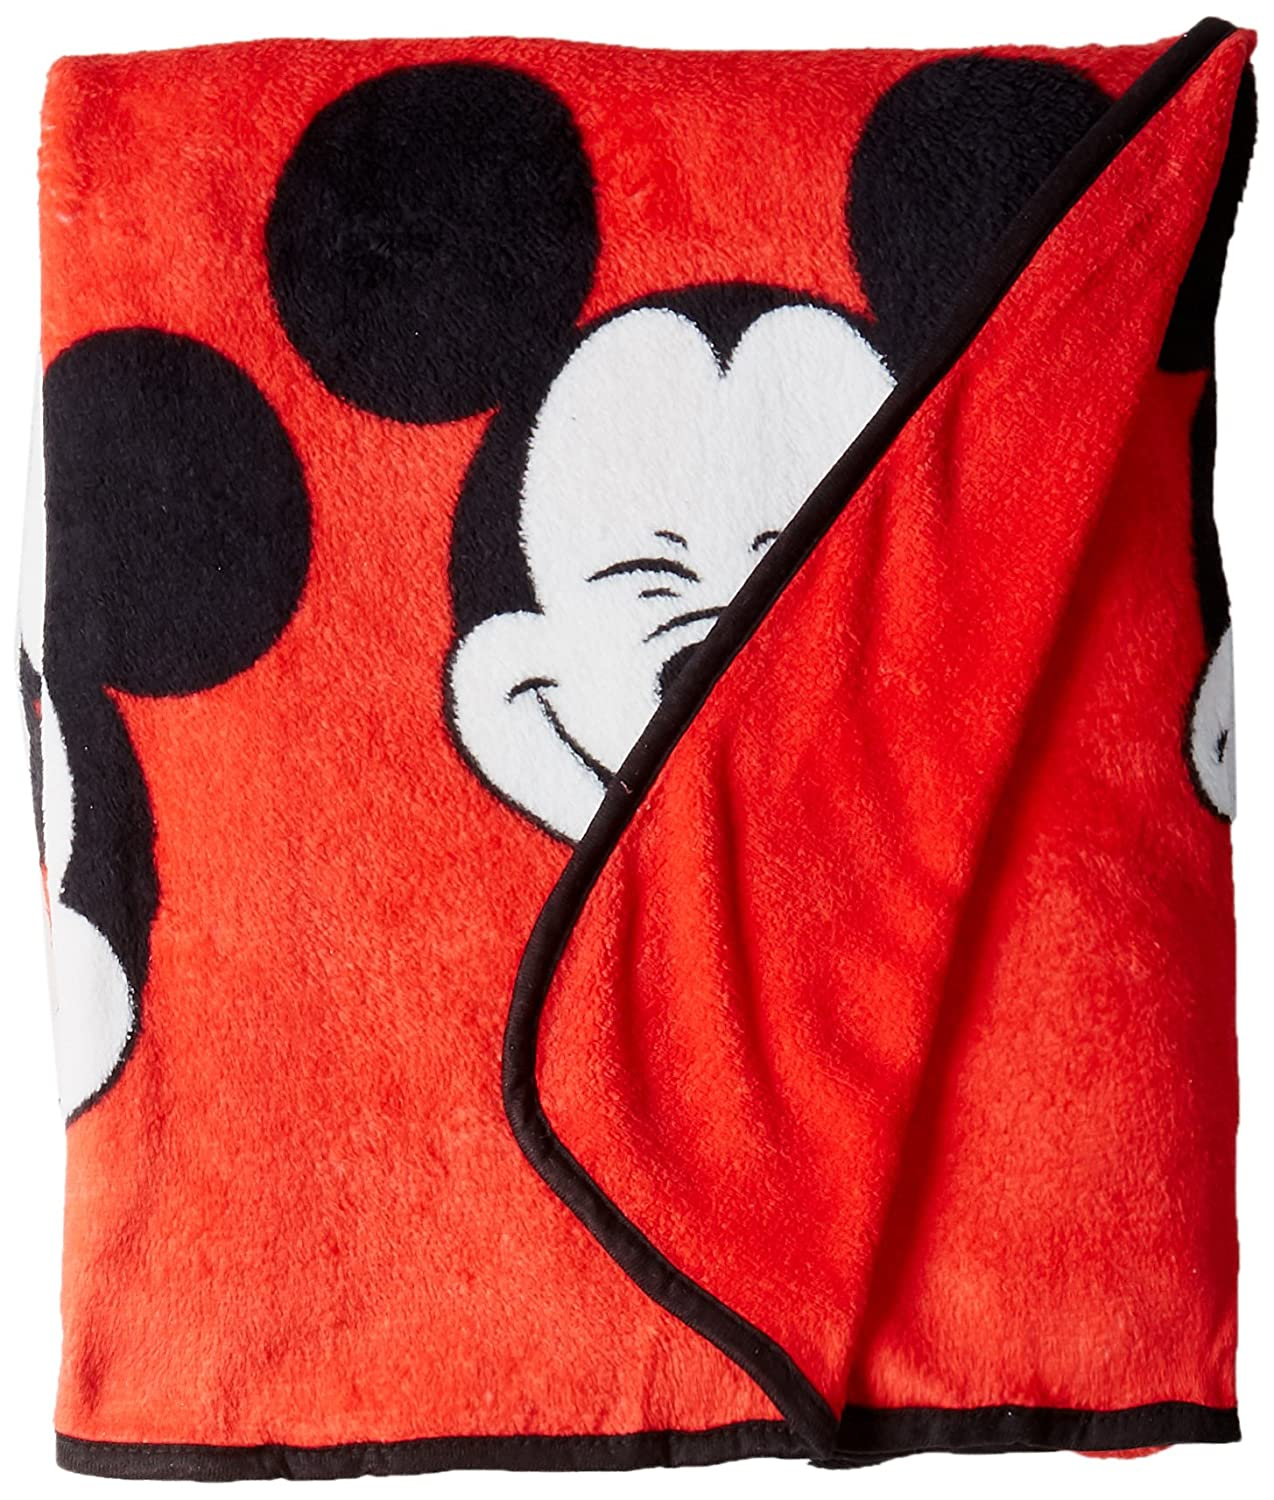 Disney/Pixar Finding Dory 'Sun Rays' Twin Blanket, 62' x 90' 62 x 90 Jay Franco and Sons Inc. JF27173MCD